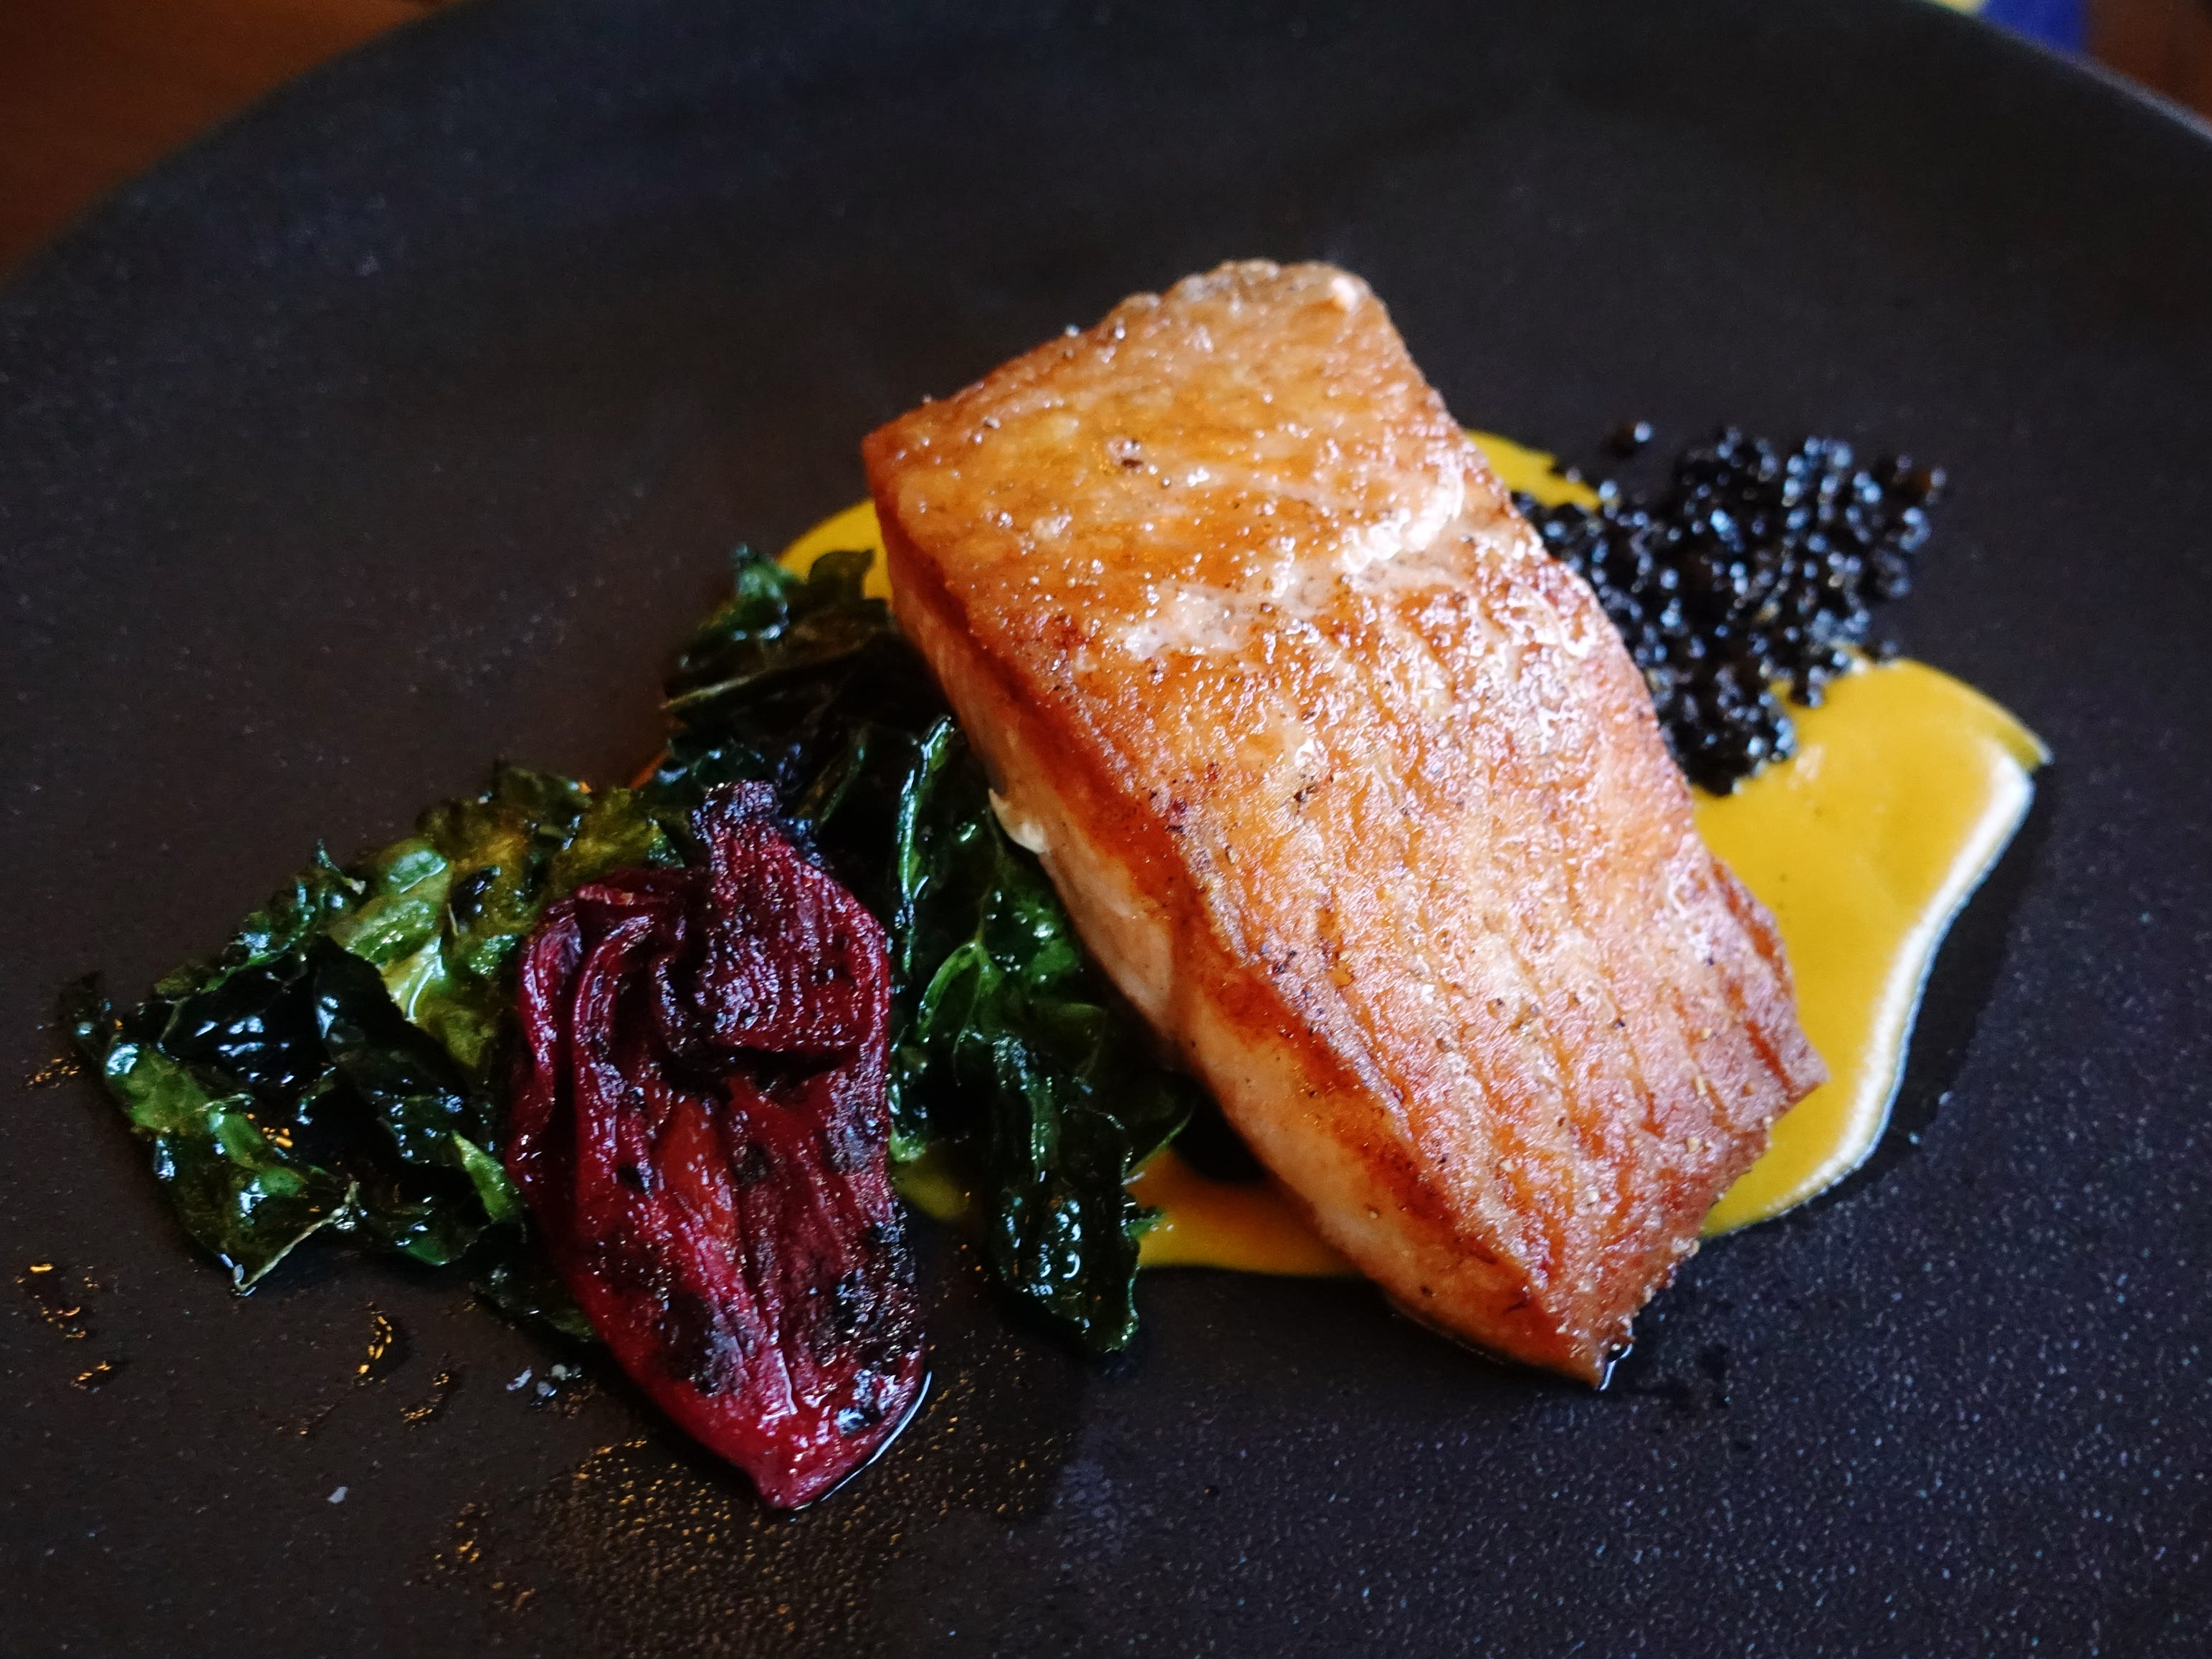 Salmon with black lentil, saffron-shrimp nage and Tuscan kale at Talavera at the Four Seasons in Scottsdale.